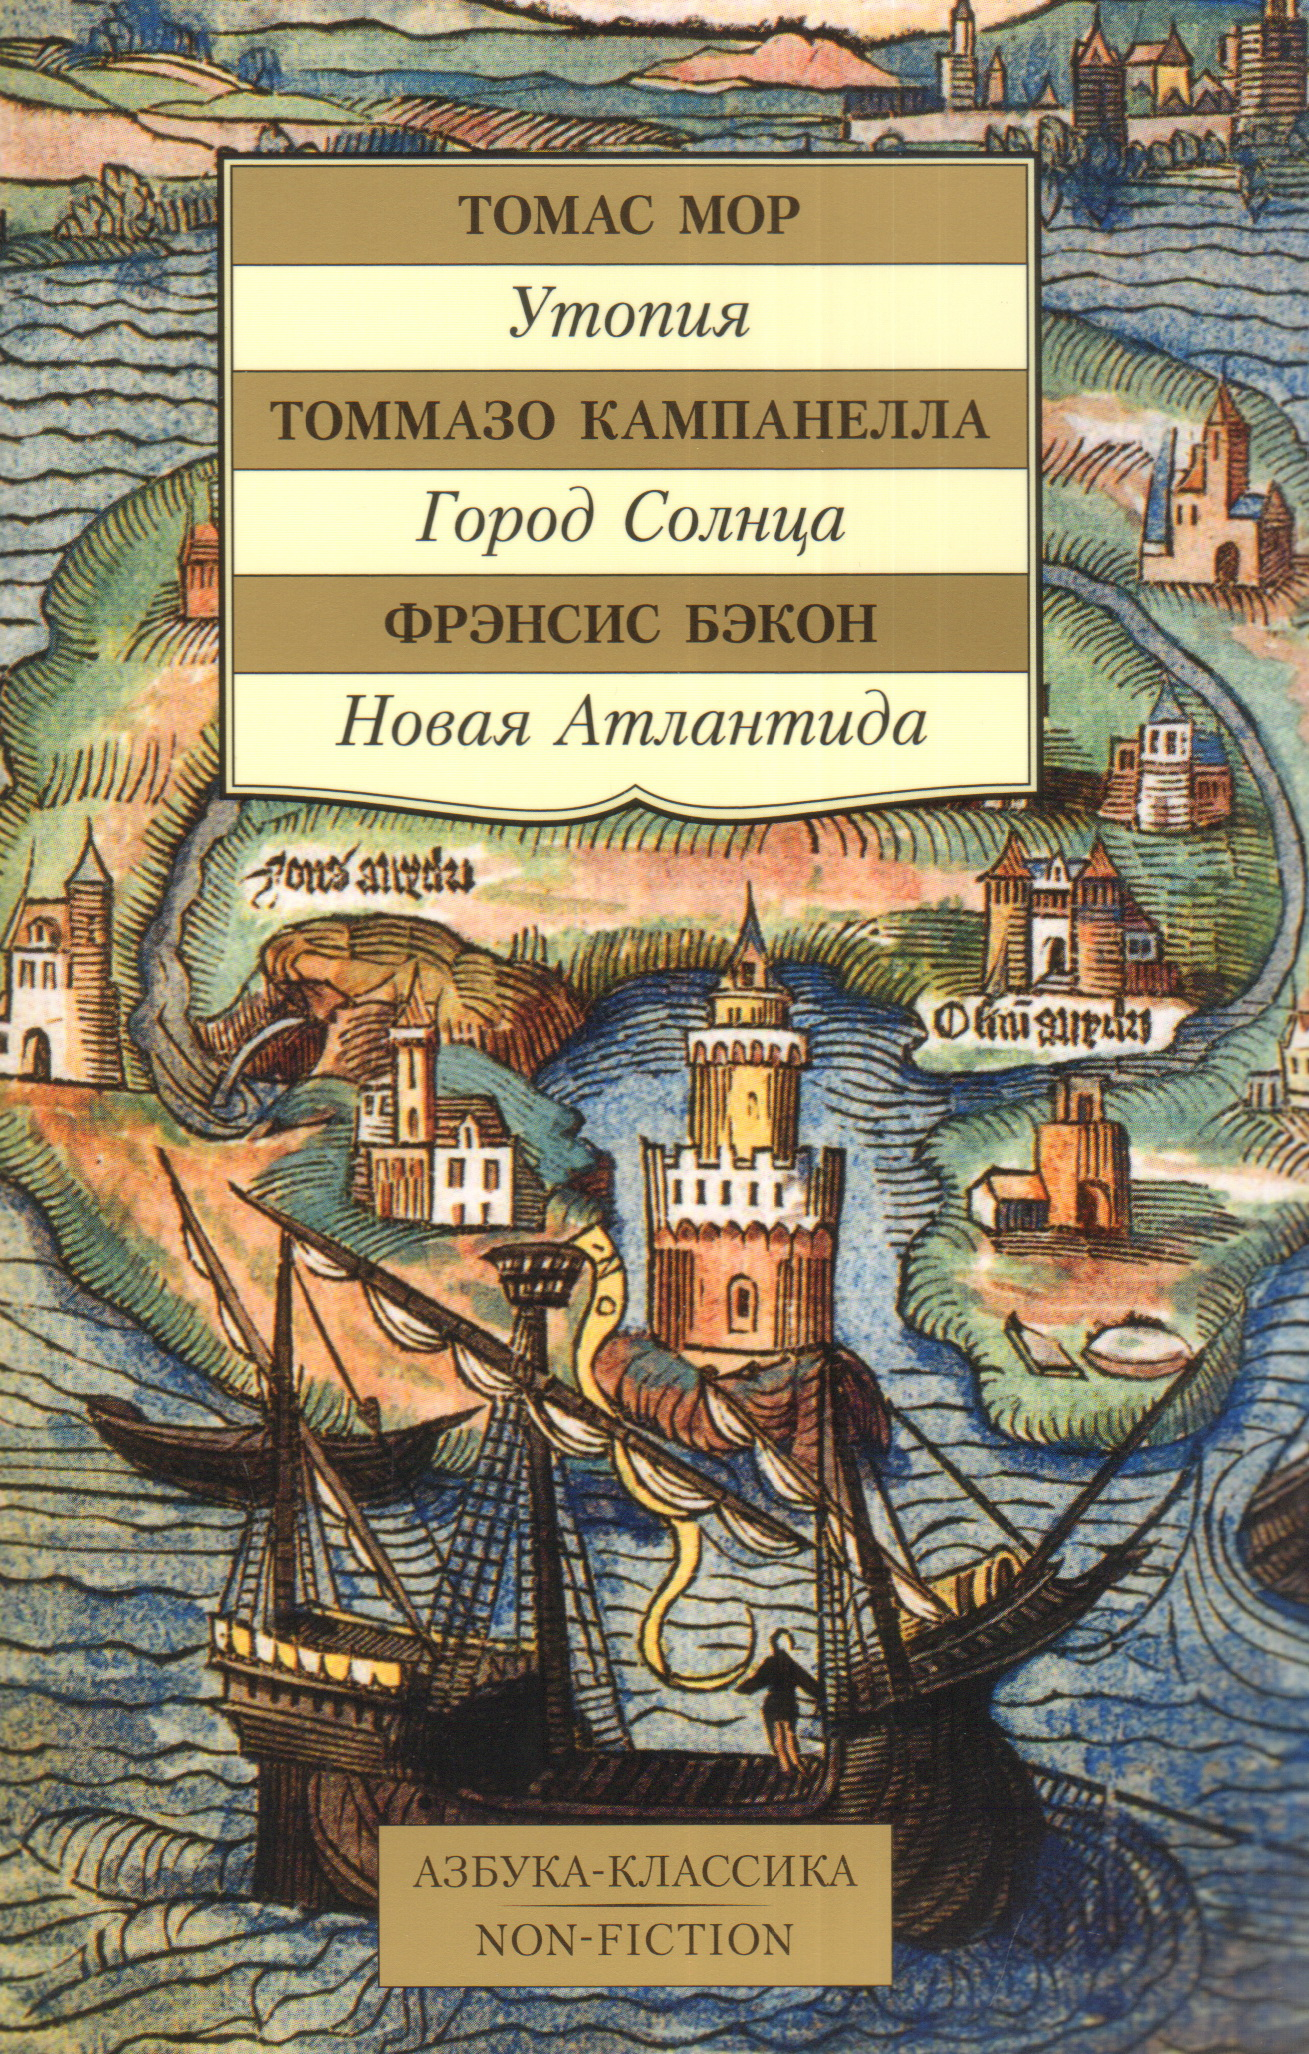 """on thomas mores utopia It was meant as a joke, of sorts even the title of thomas more's """"utopia"""", which was published 500 years ago this month, was composed with the author's tongue in his cheek: a greek pun on """"ou topos"""" (""""no place"""") and eu topos (""""good place"""")."""